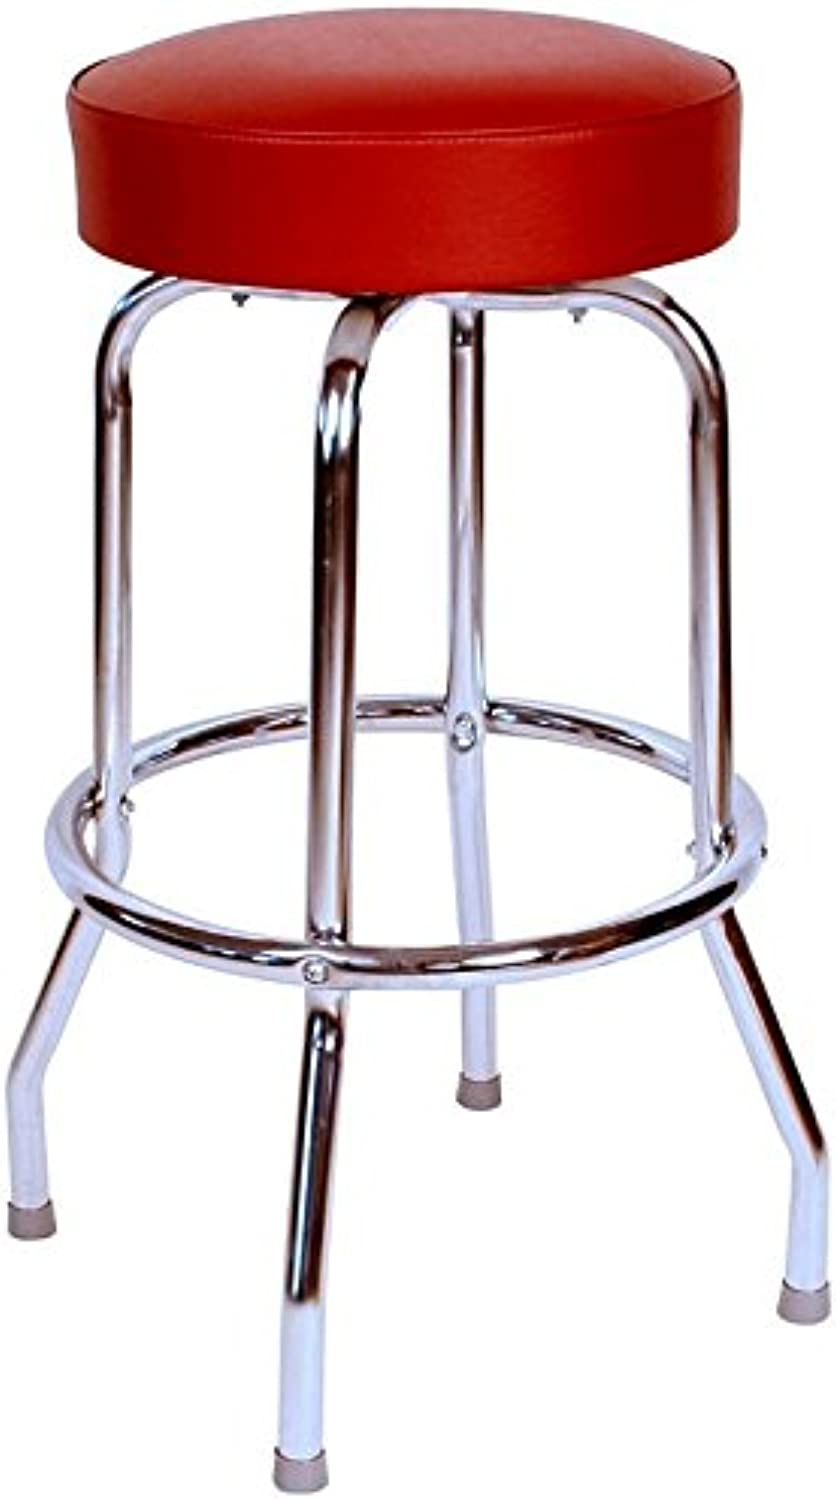 Budget Bar Stools 0-1950WIN Swivel Bar Stool, 16  L x 16  W x 30  H, Wine